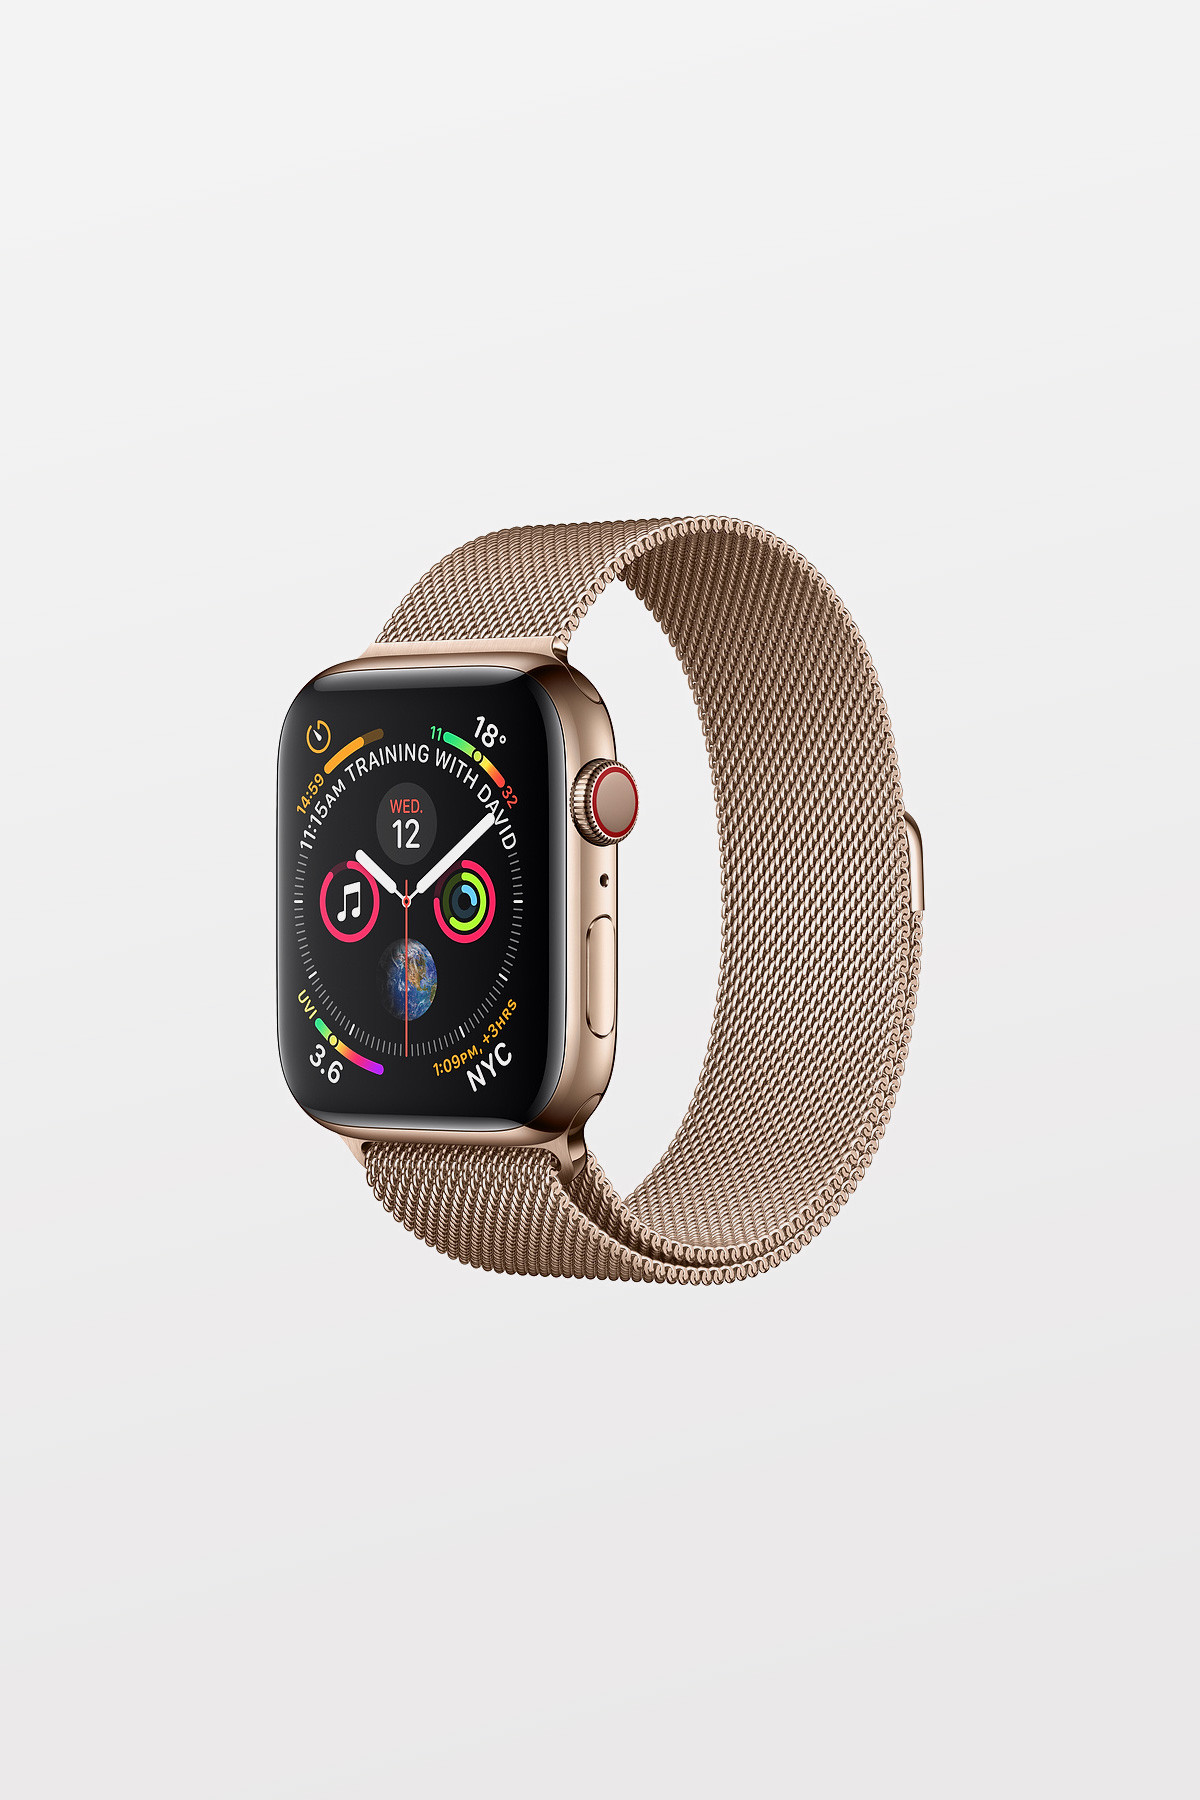 Apple Watch Series 4 GPS + Cellular - 40mm - Gold Stainless Steel Case with Gold Milanese Loop - Refurbished